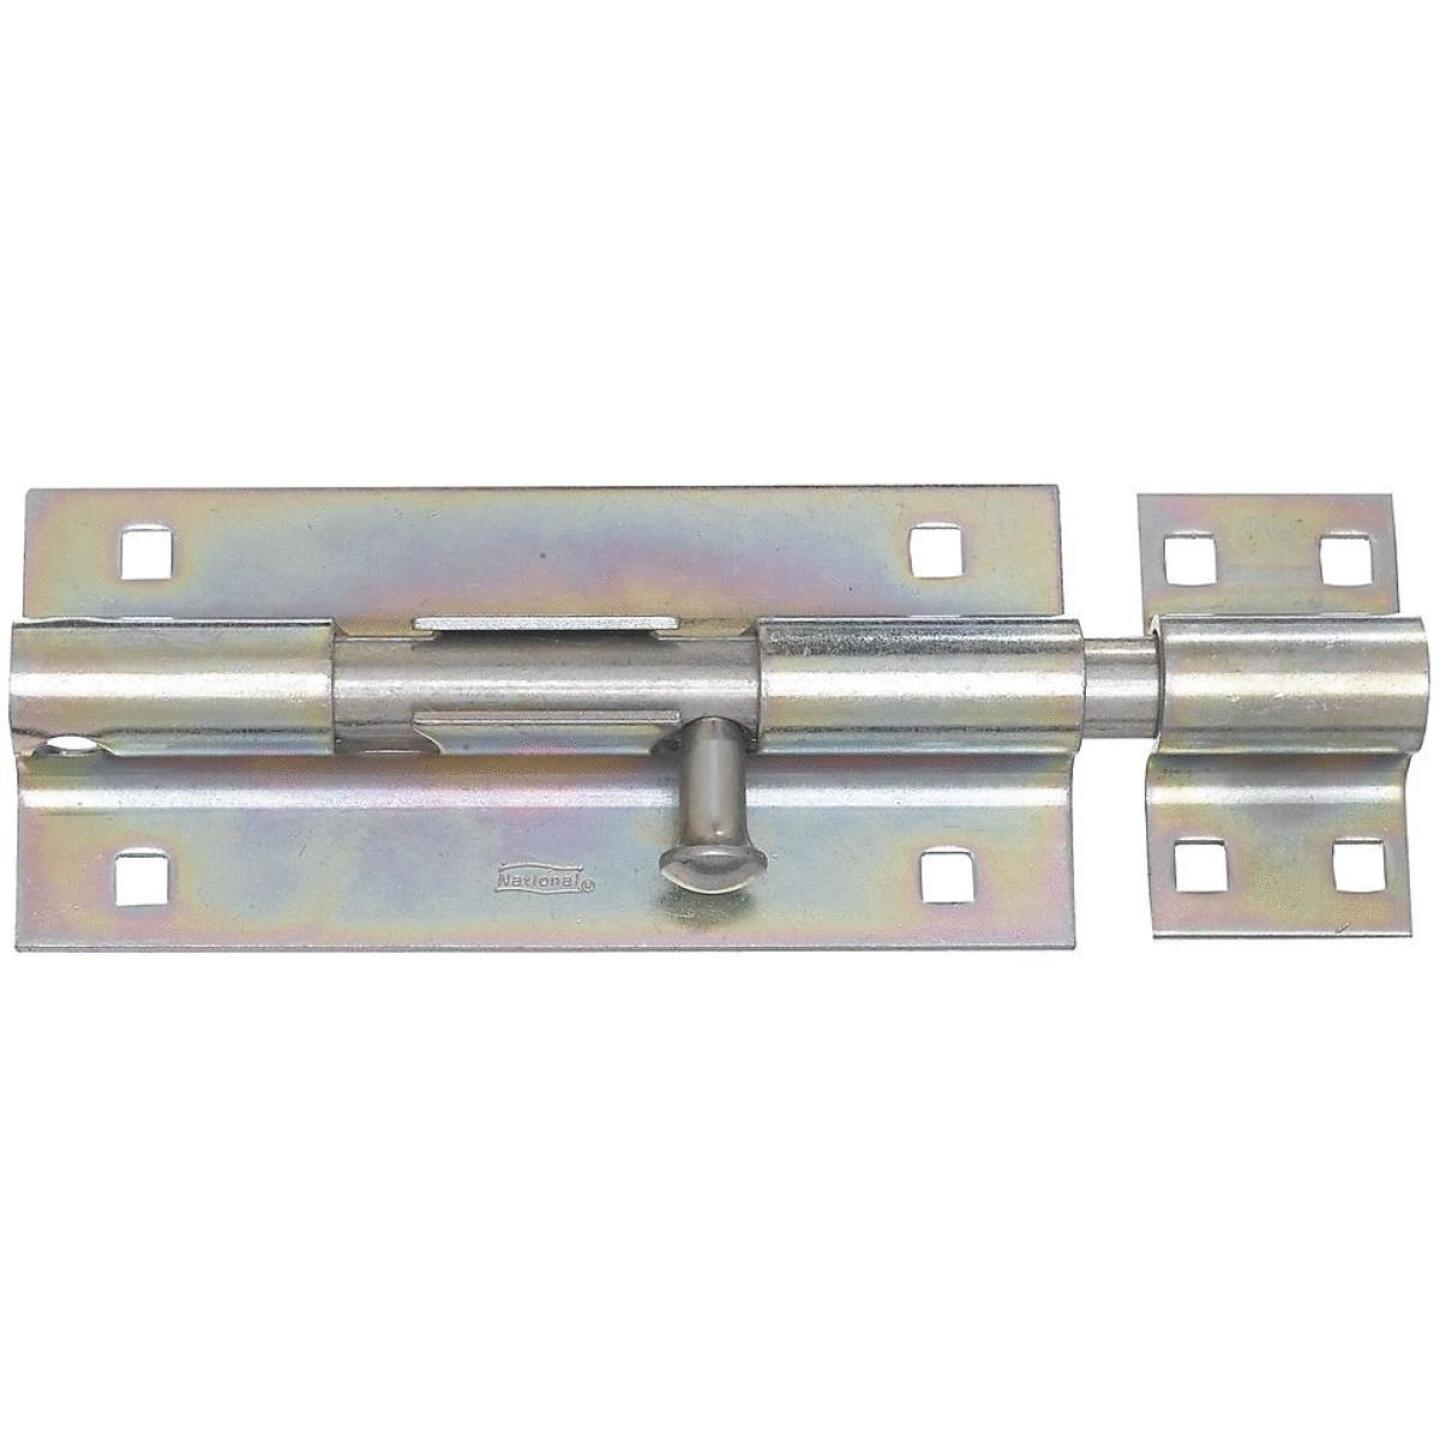 National 8 In. Zinc Extra Heavy-Duty Door Barrel Bolt Image 1